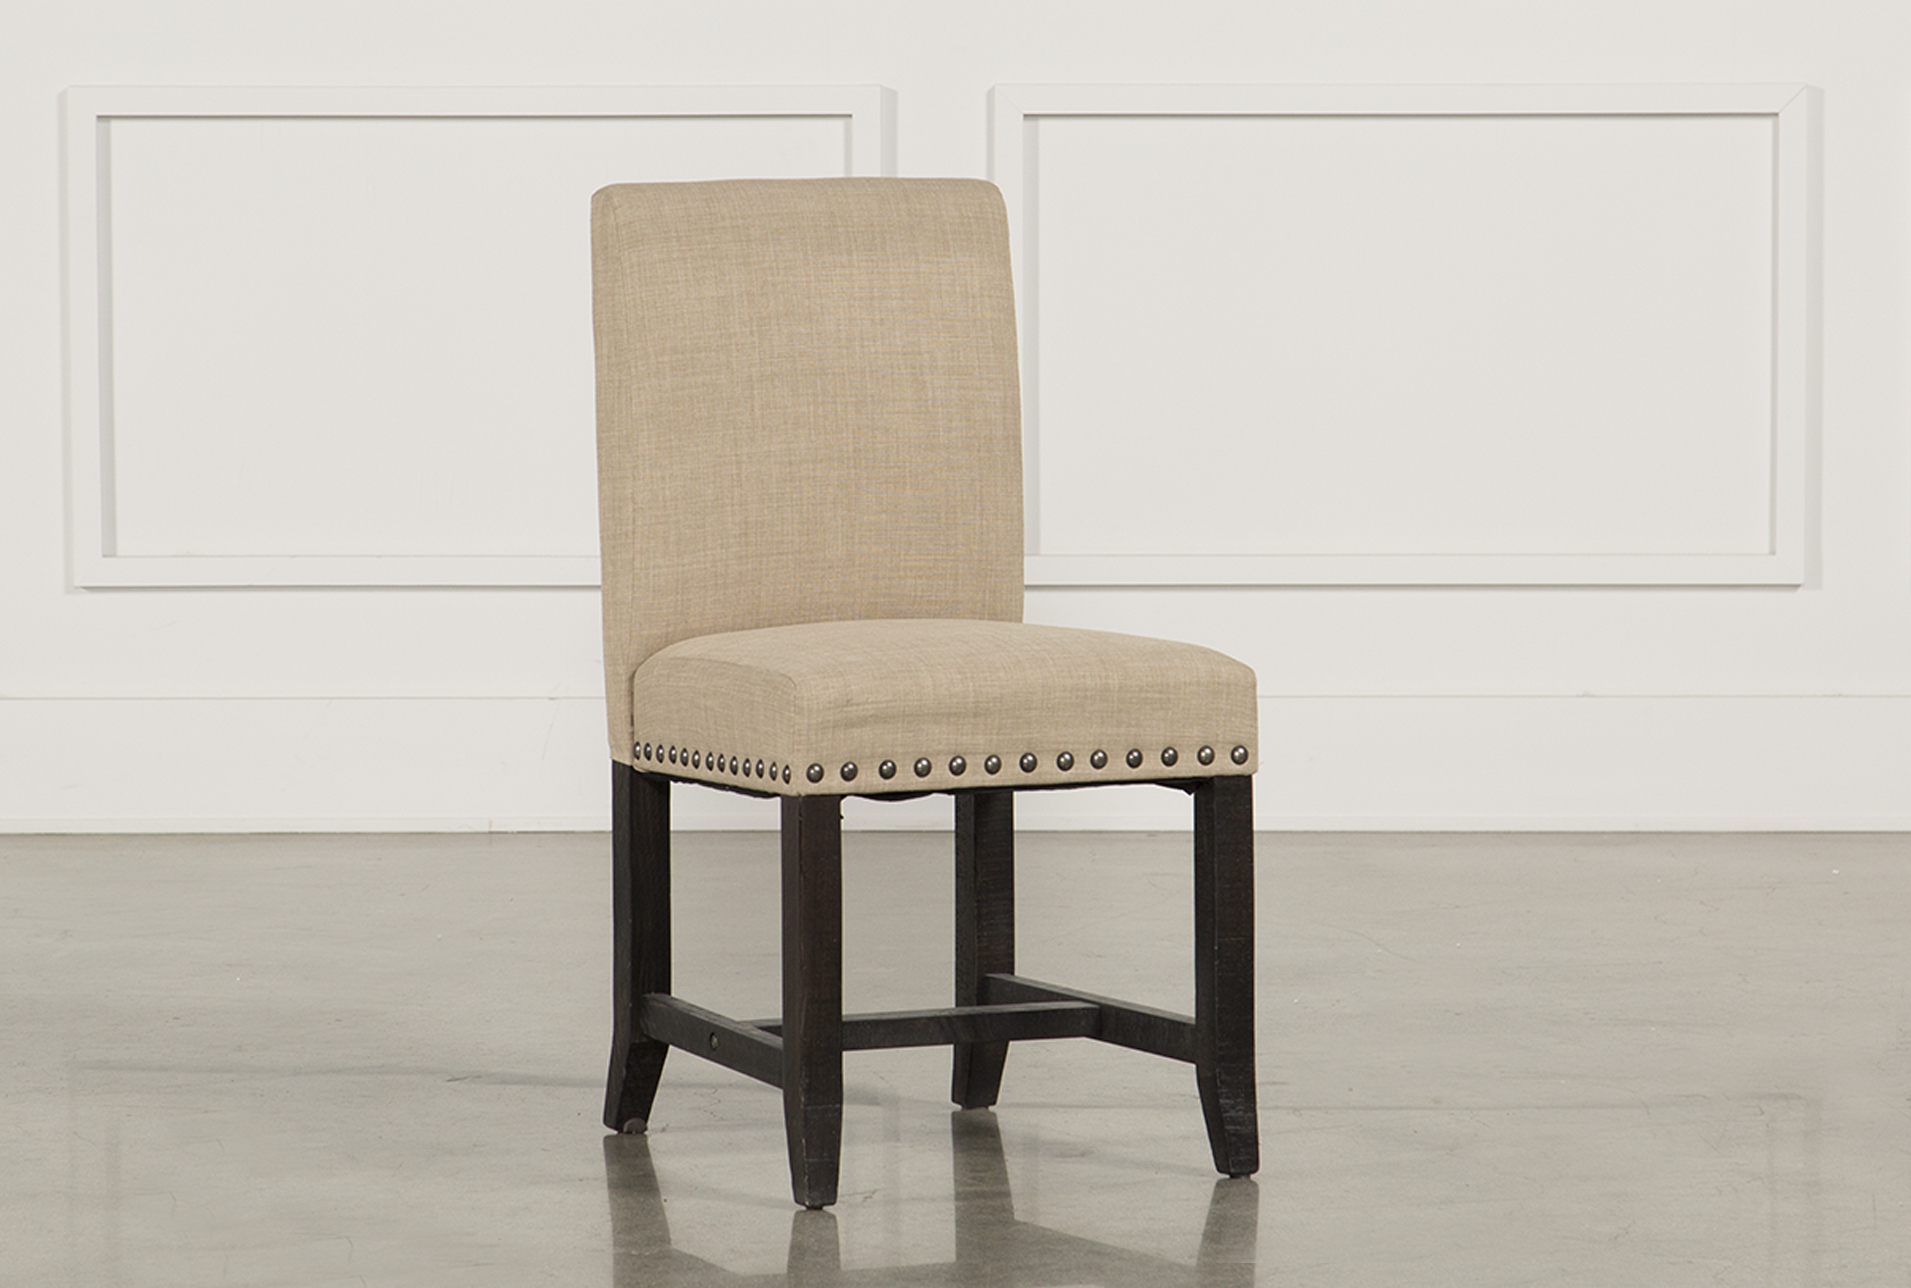 Genial Jaxon Upholstered Side Chair